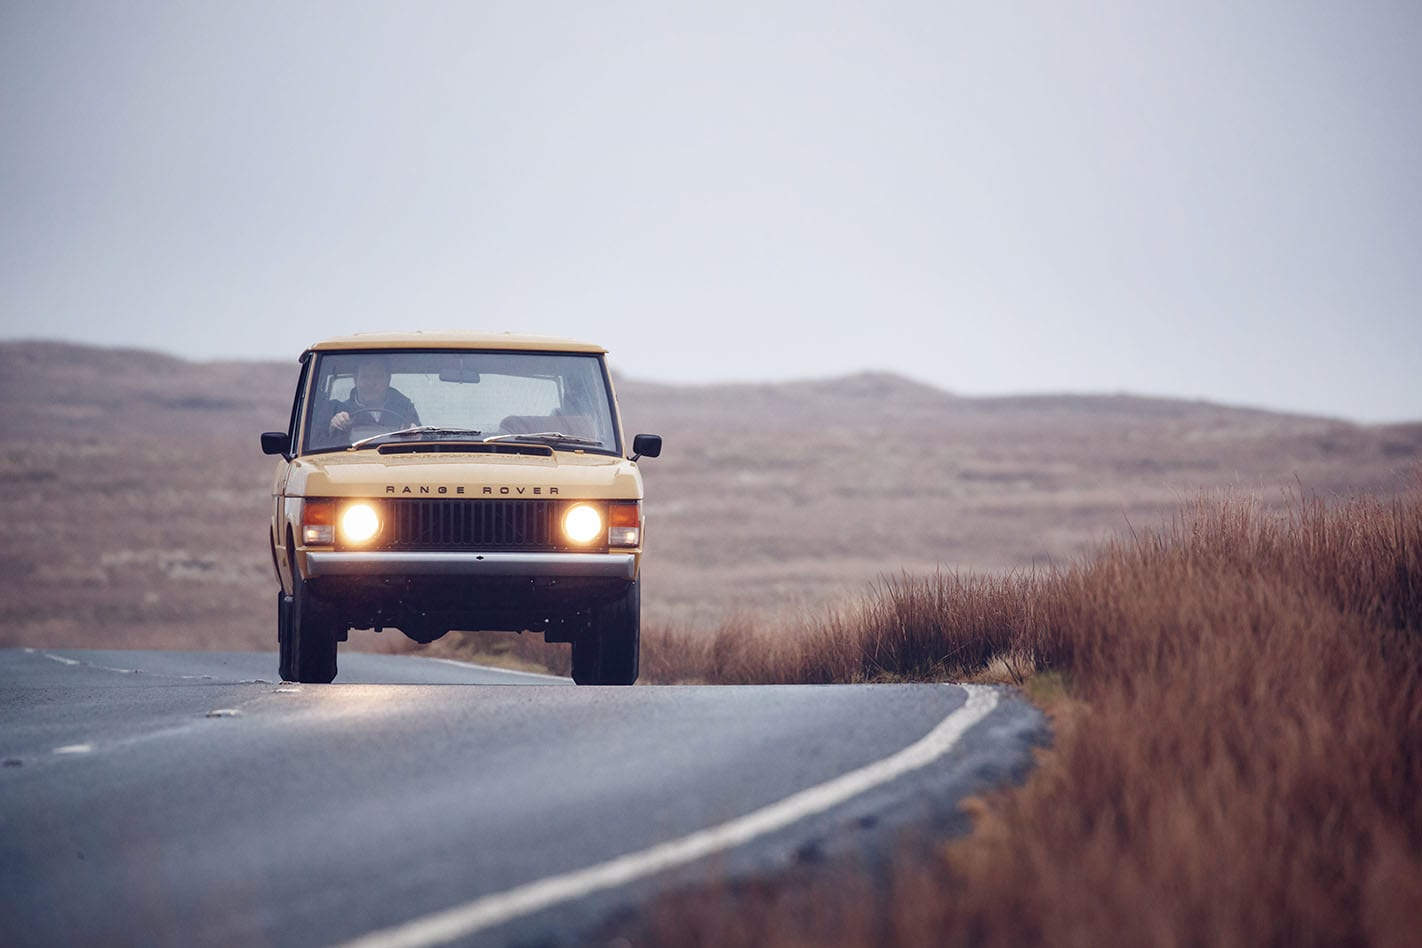 Range Rover front driving